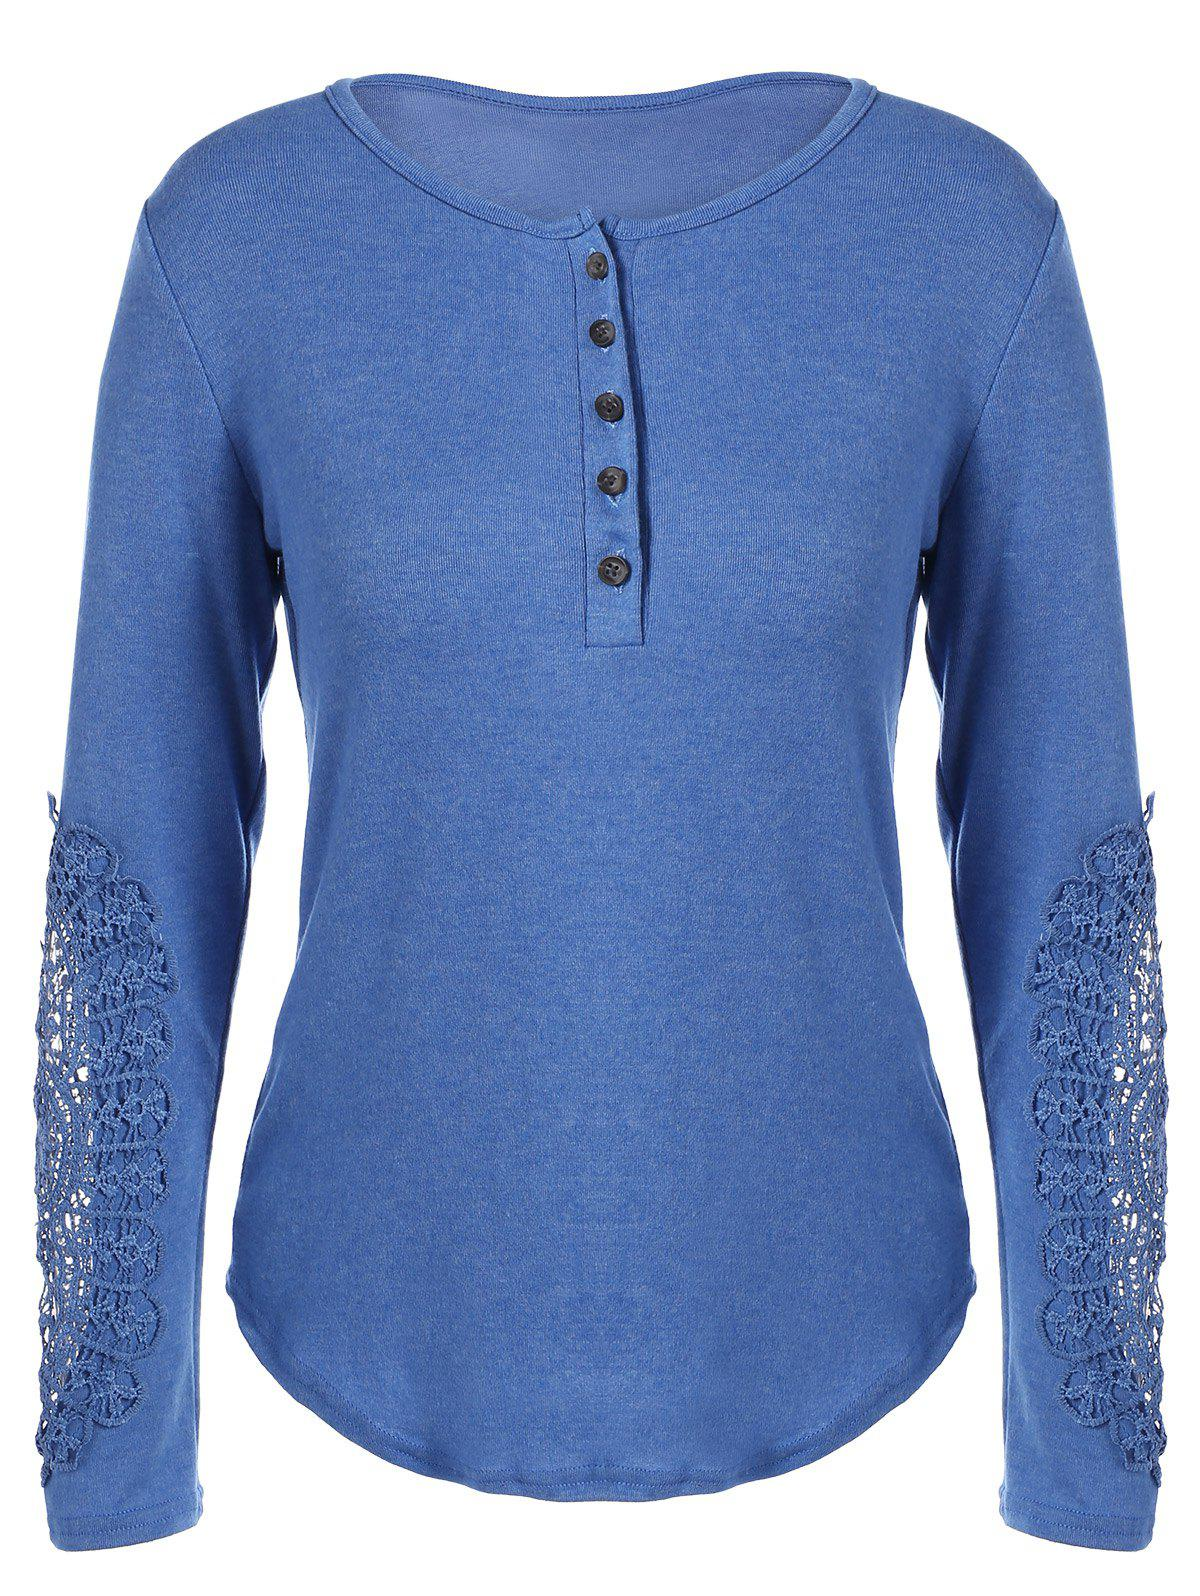 Concise Openwork Lace Buttons T-Shirt - BLUE S